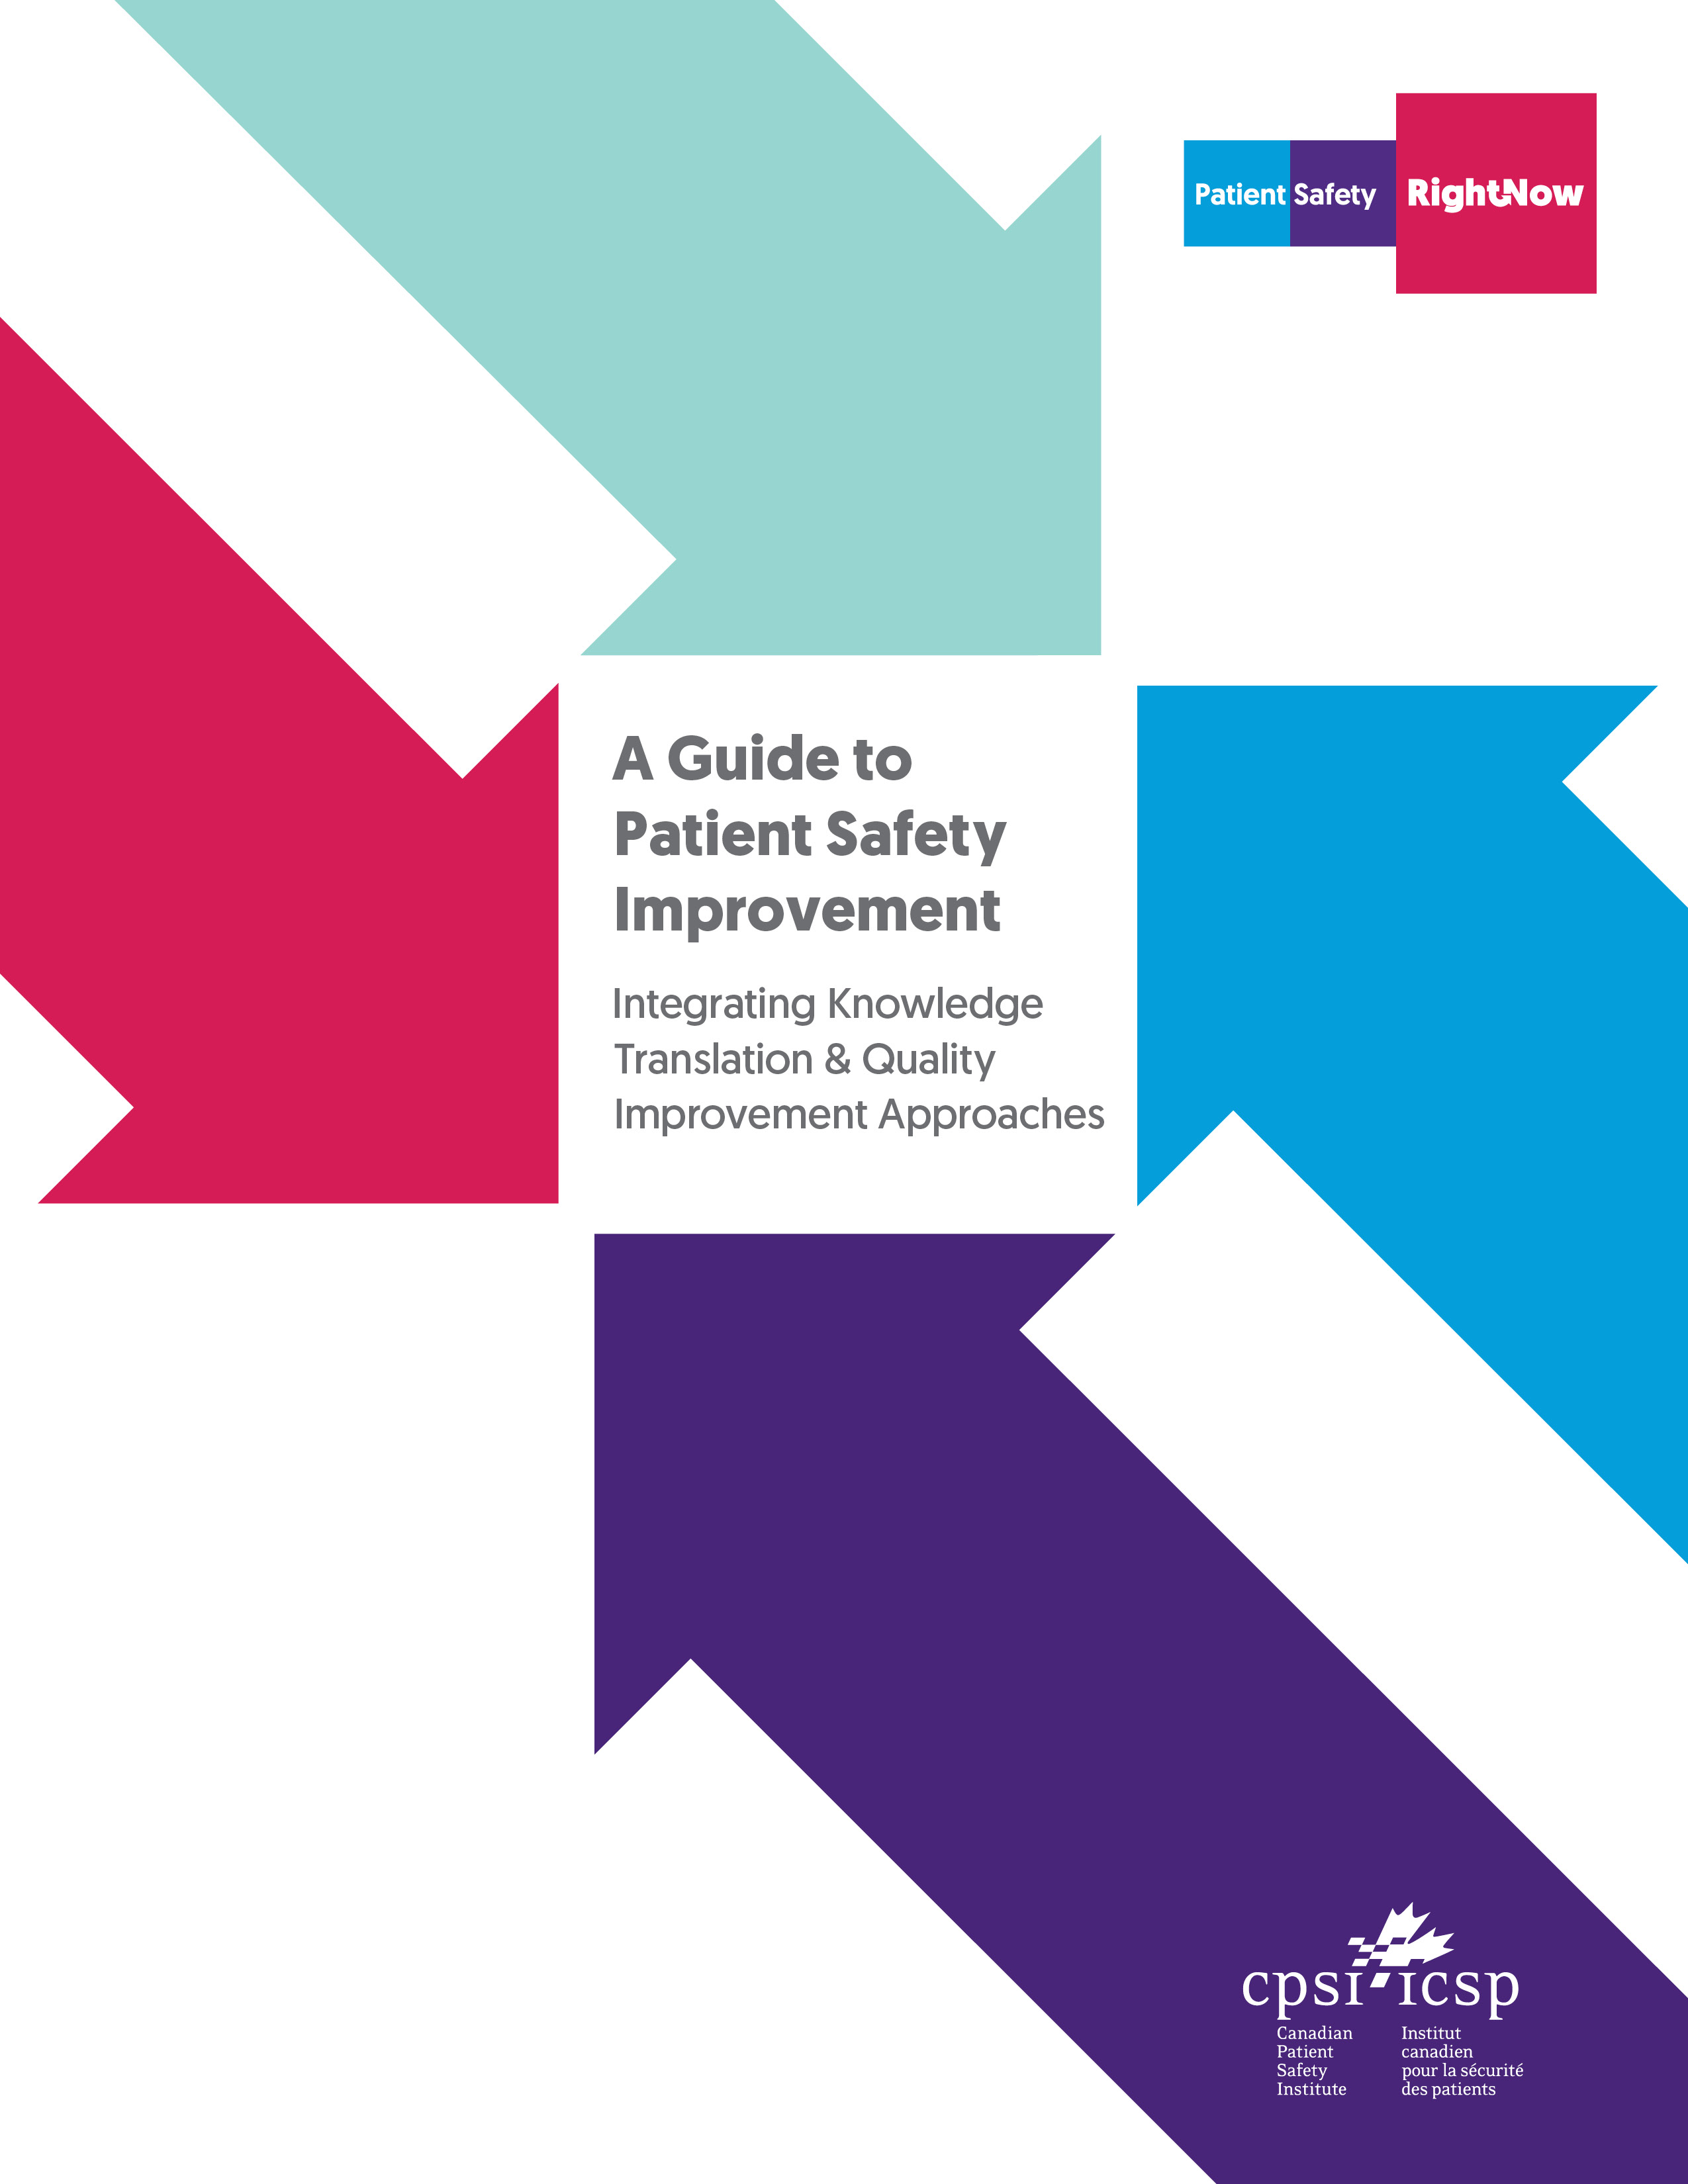 A Guide to Patient Safety Improvement